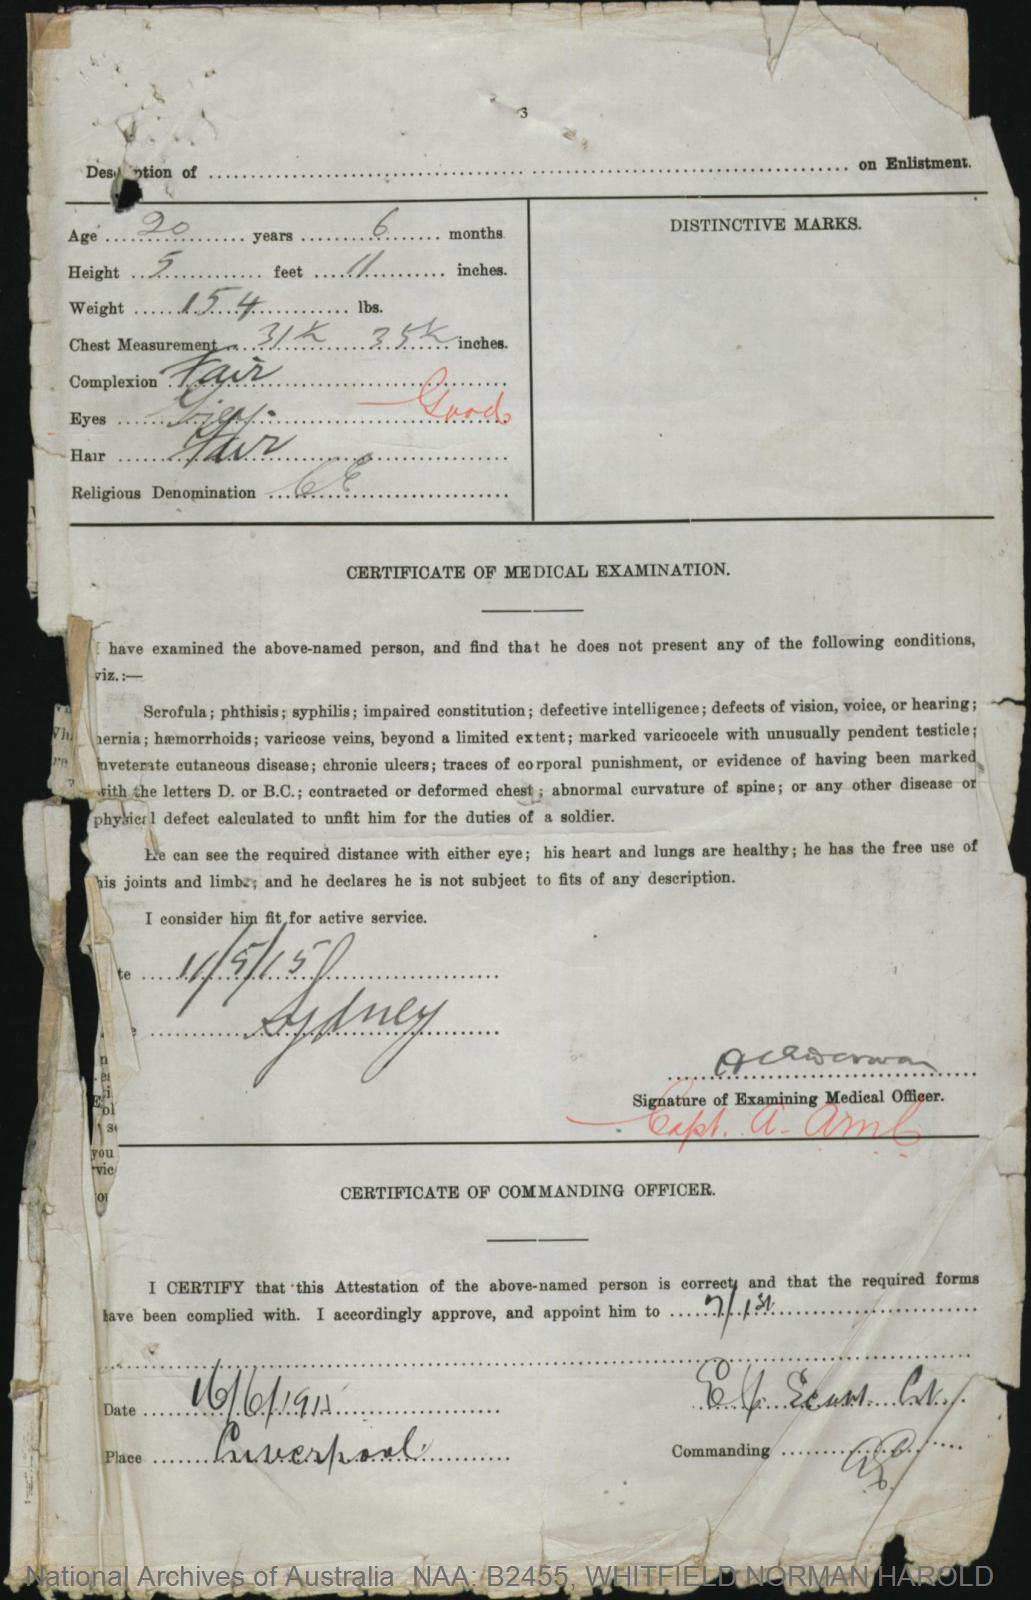 WHITFIELD Norman Harold : Service Number - Captain : Place of Birth - Sydney NSW : Place of Enlistment - Liverpool NSW : Next of Kin - (Father) WHITFIELD Joseph